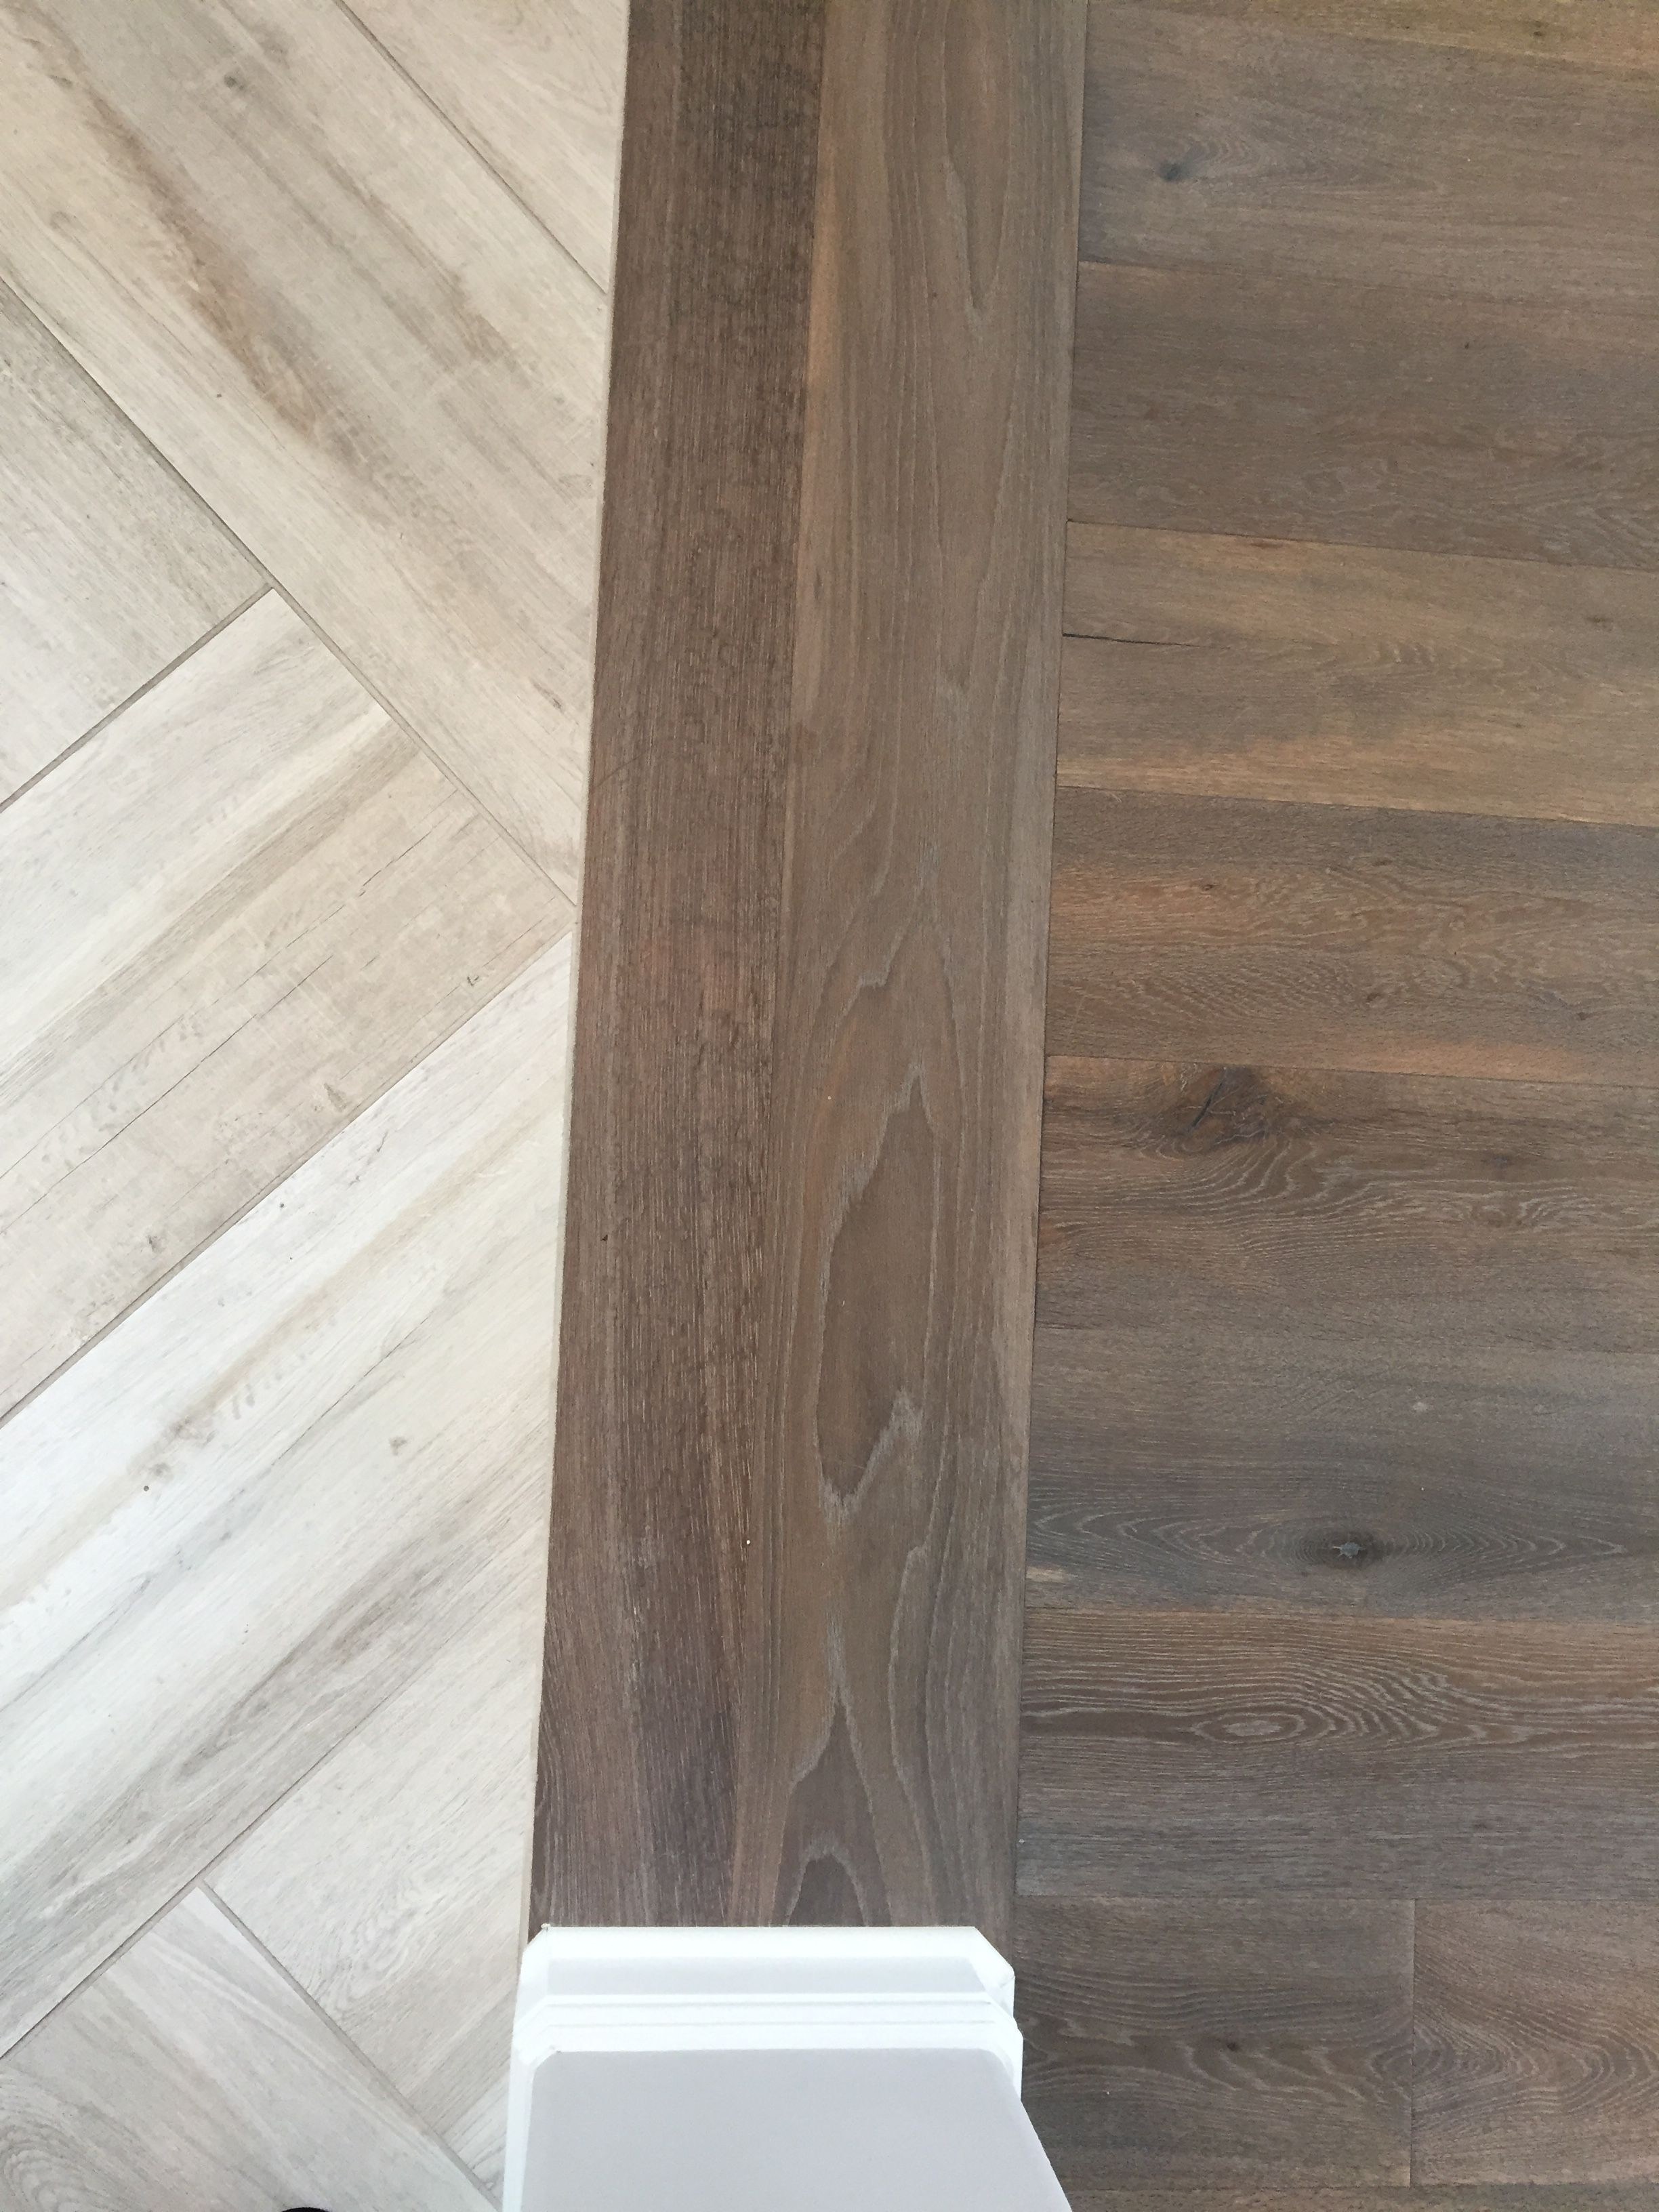 hardwood floor and cabinet color matching of floor transition laminate to herringbone tile pattern model with regard to floor transition laminate to herringbone tile pattern herringbone tile pattern herringbone wood floor